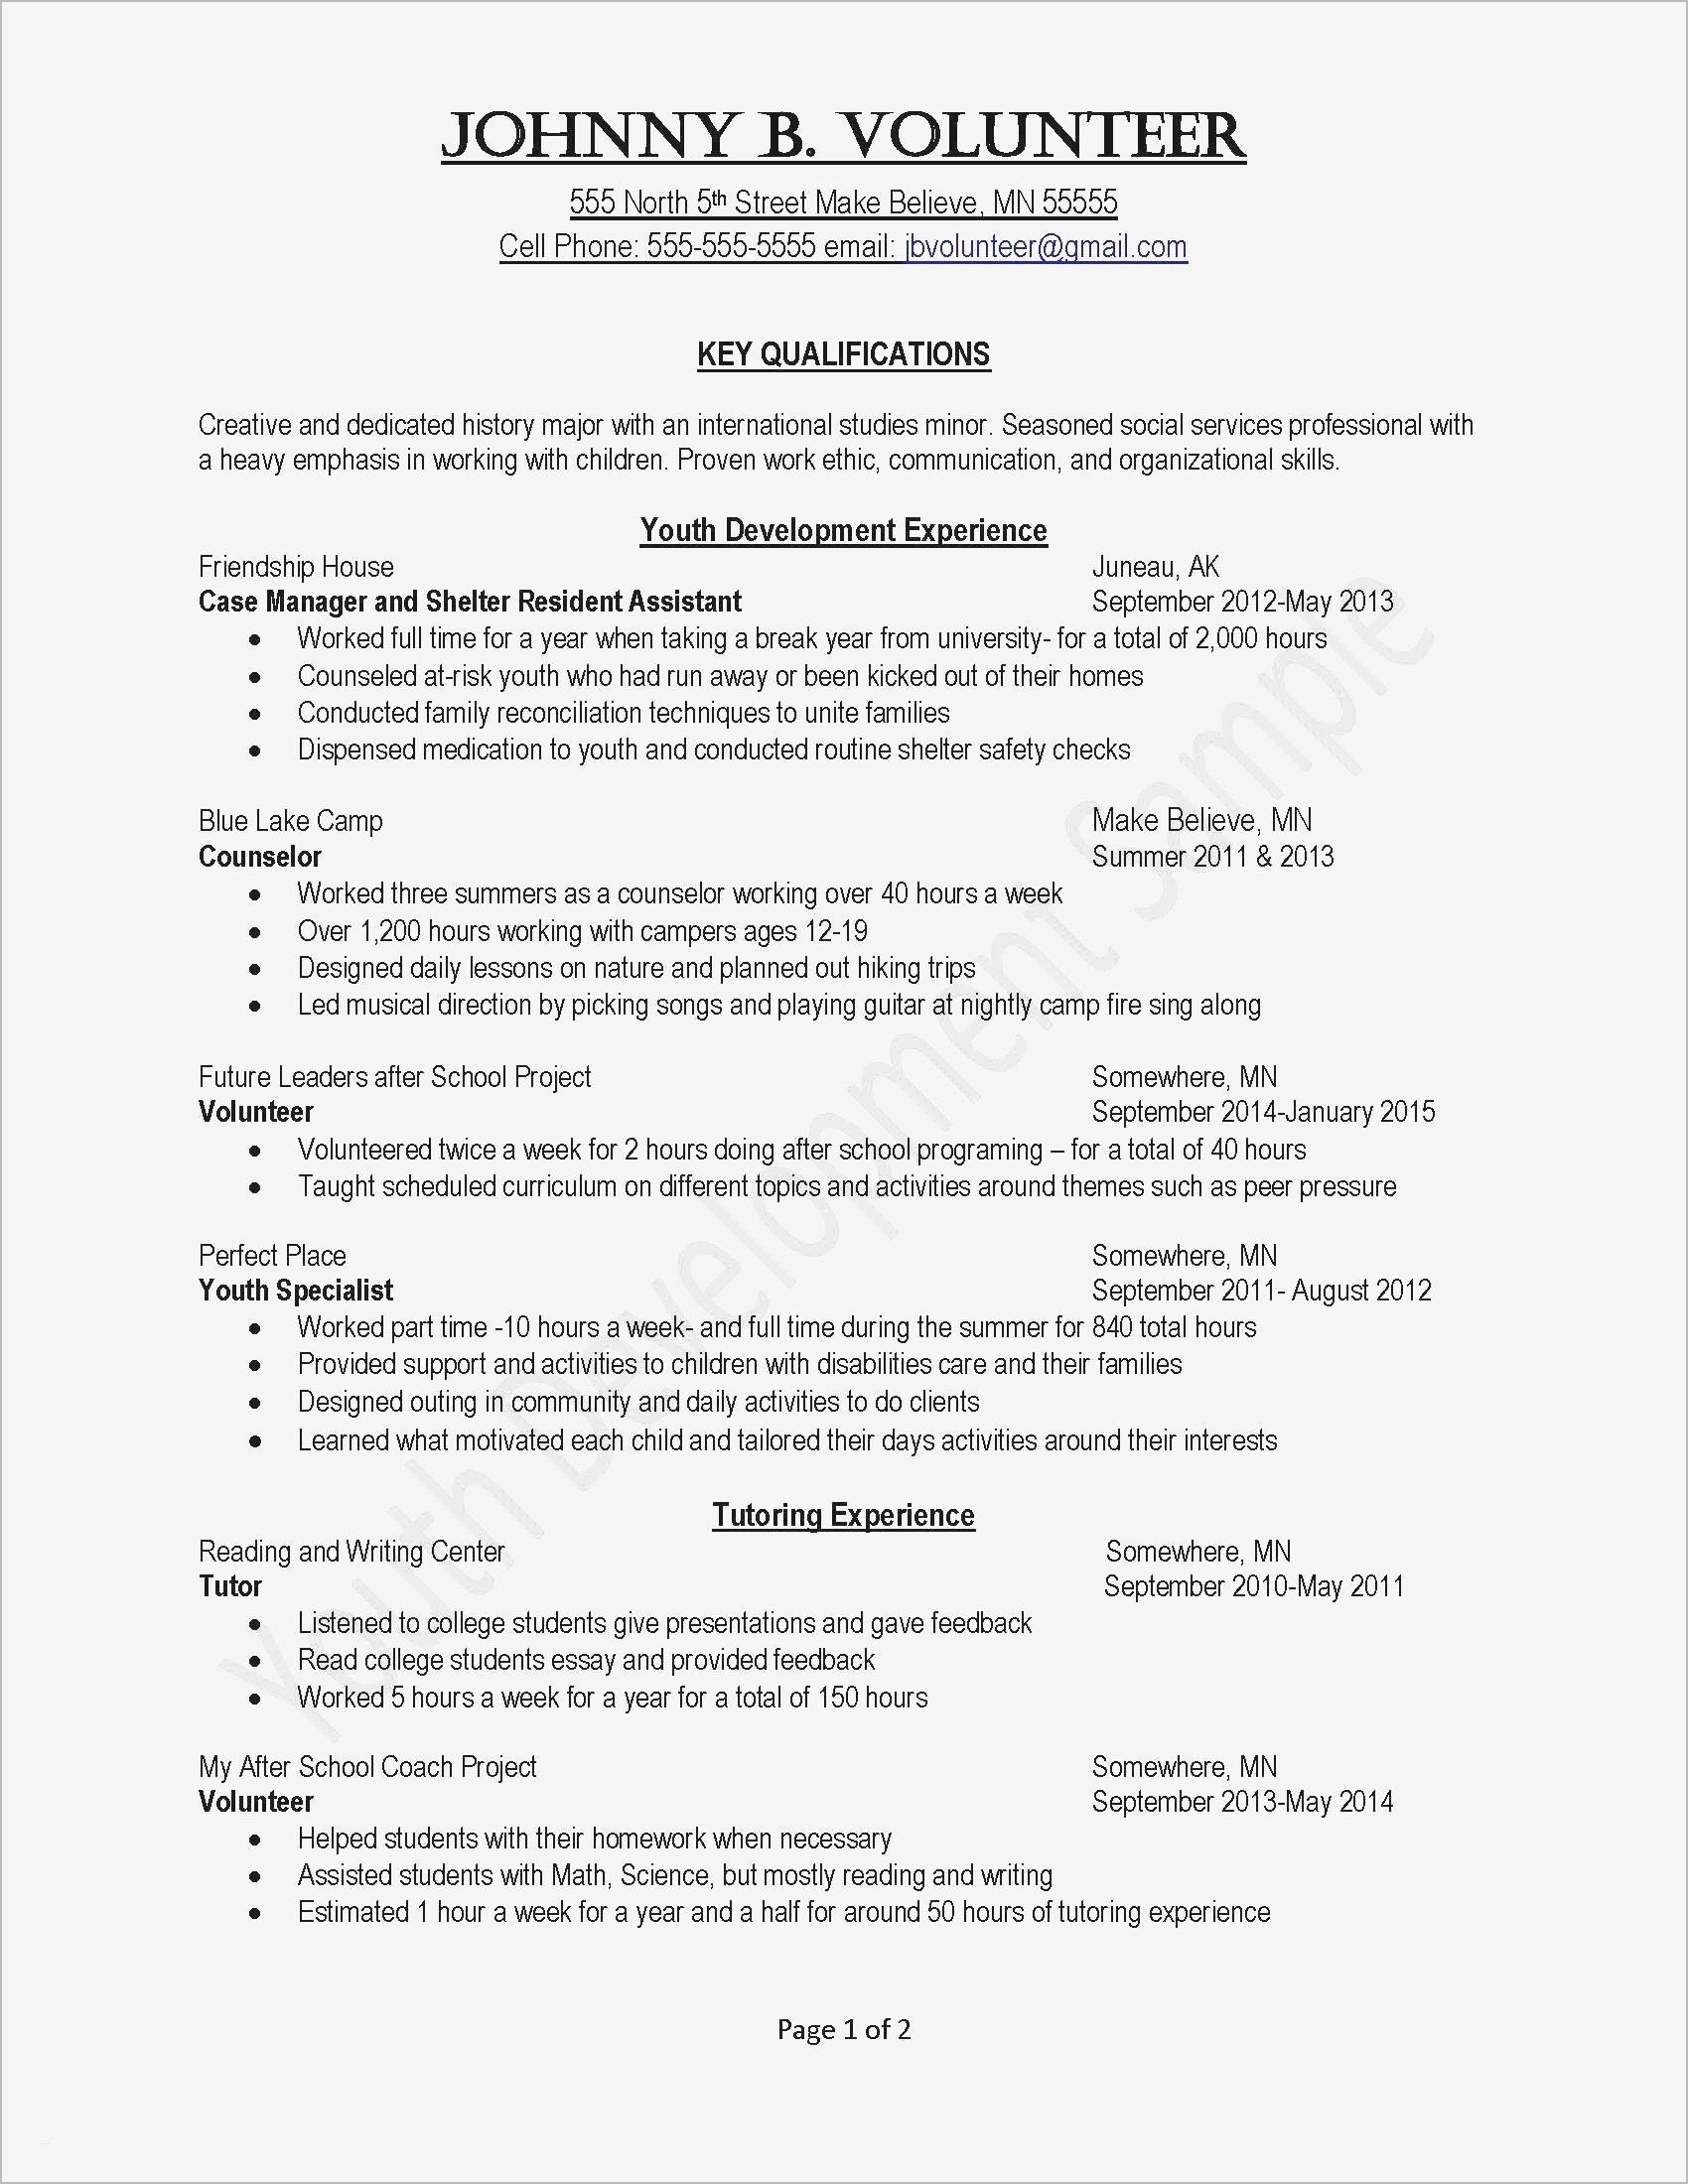 Actor Resume Template Free - Finance Resume Template Best Cfo Resume Template Inspirational Actor